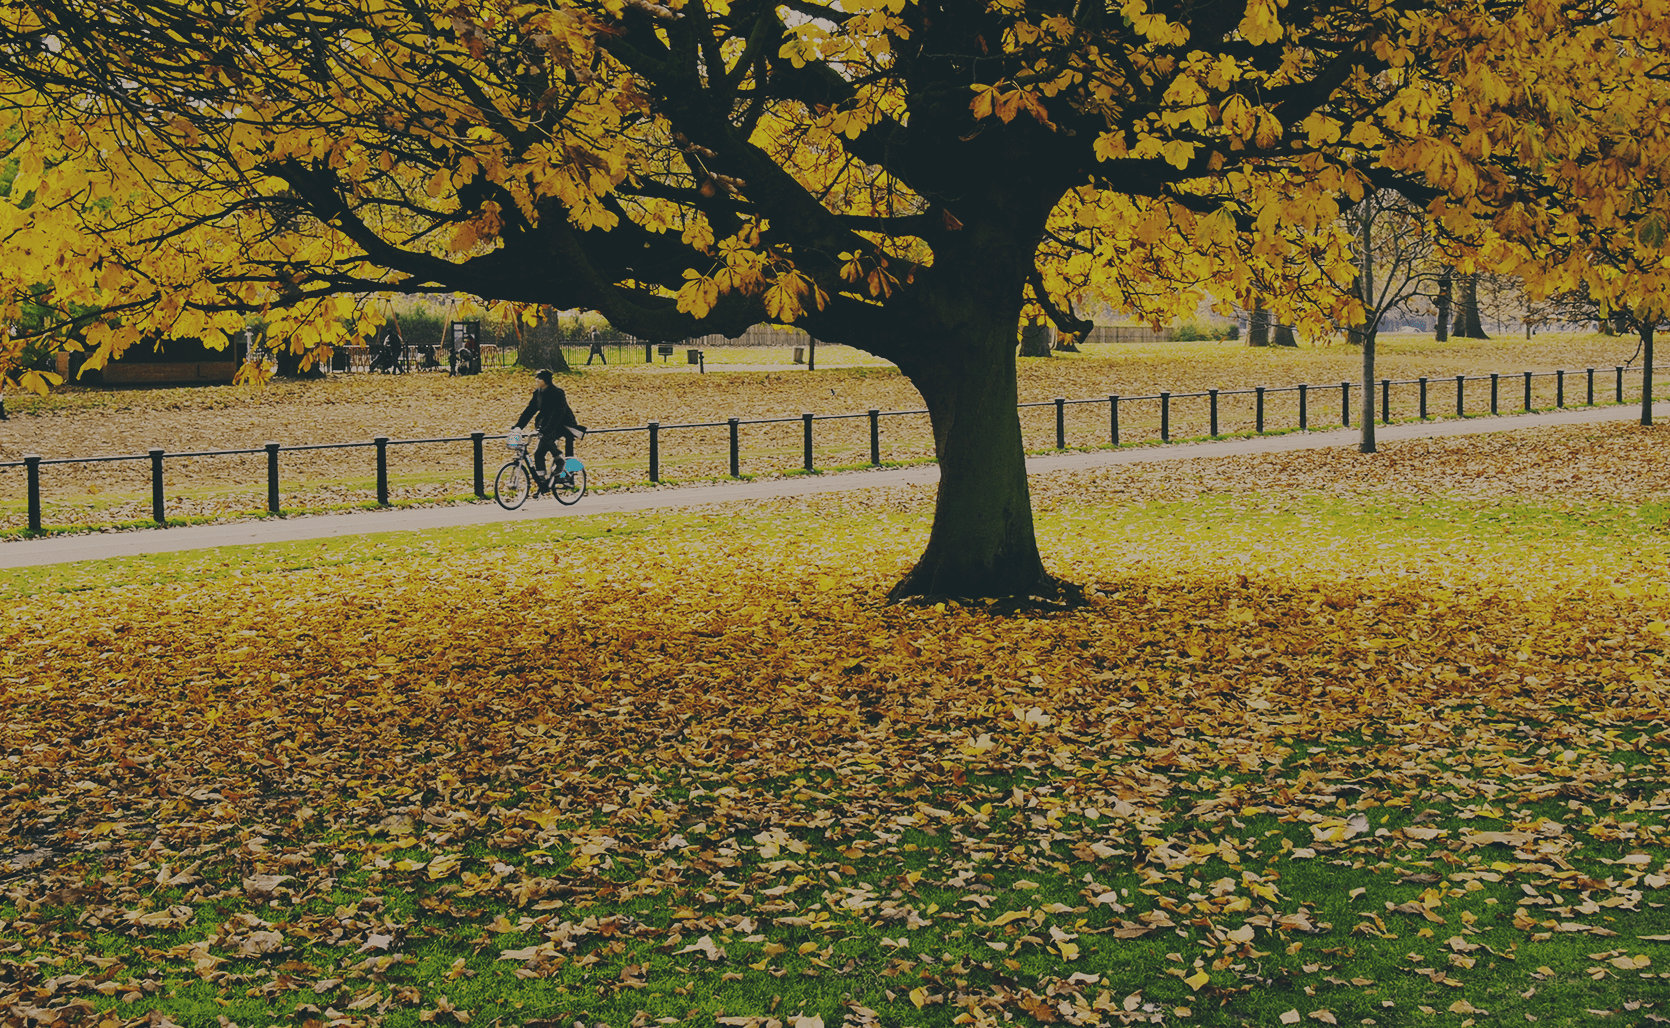 Tree in a park in autumn